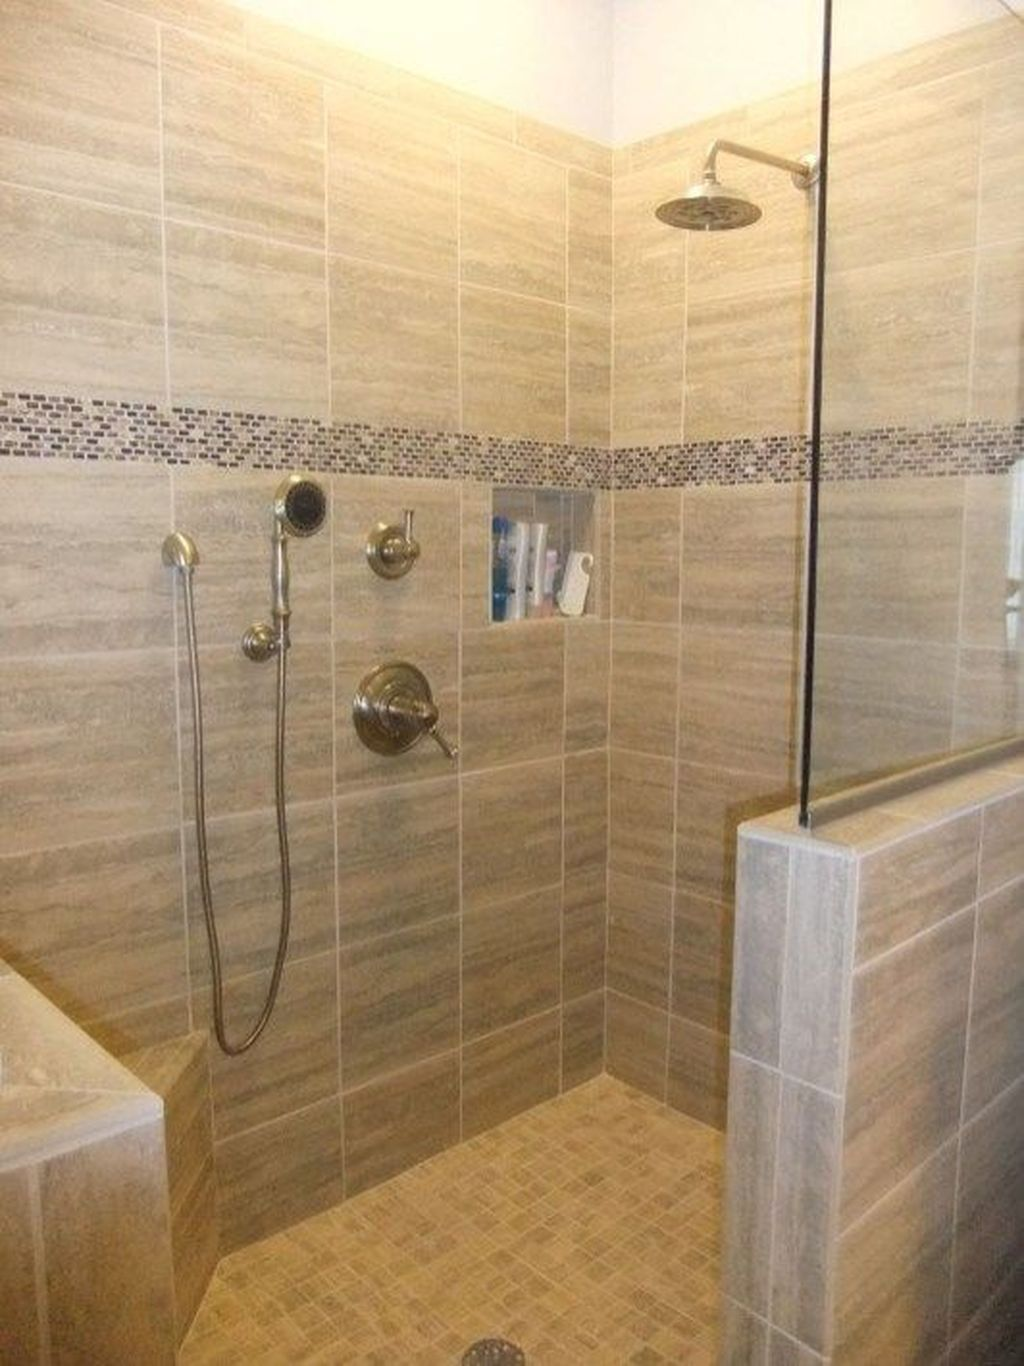 The Best Stone Tile Bathroom Ideas To Decorate Your Bathroom 11